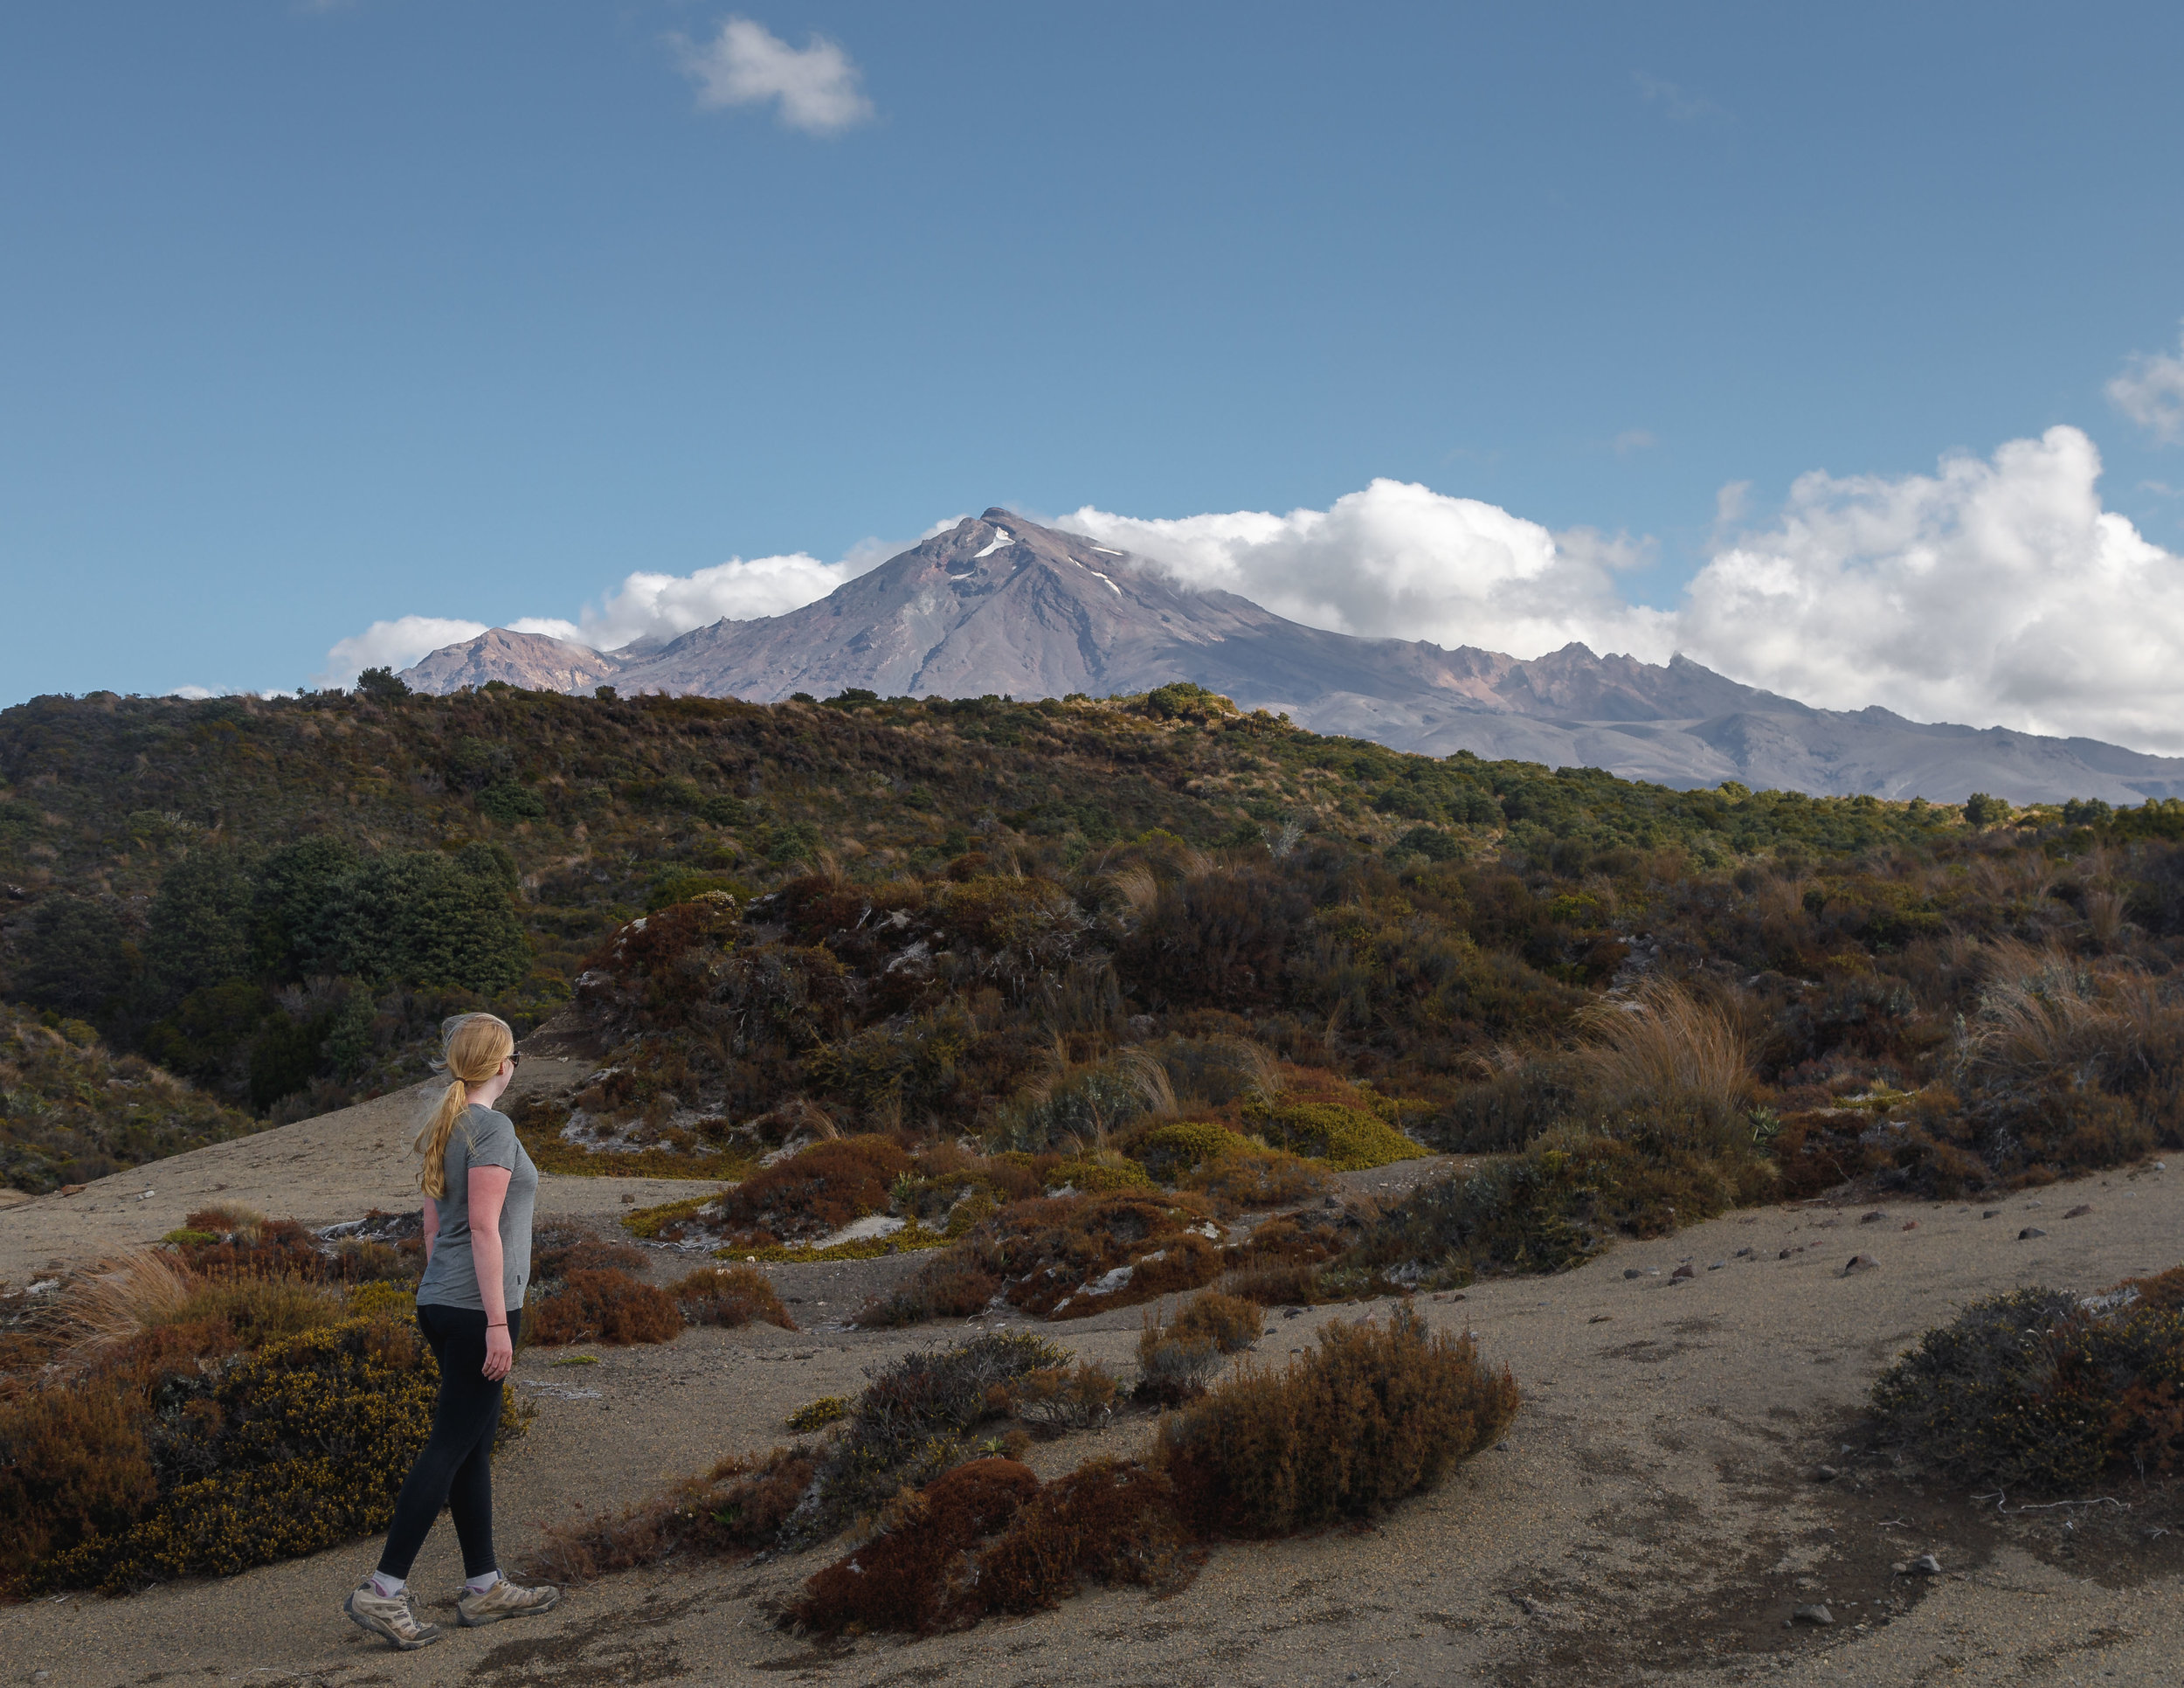 The view when you first see Mount Ruapehu when the clouds clear